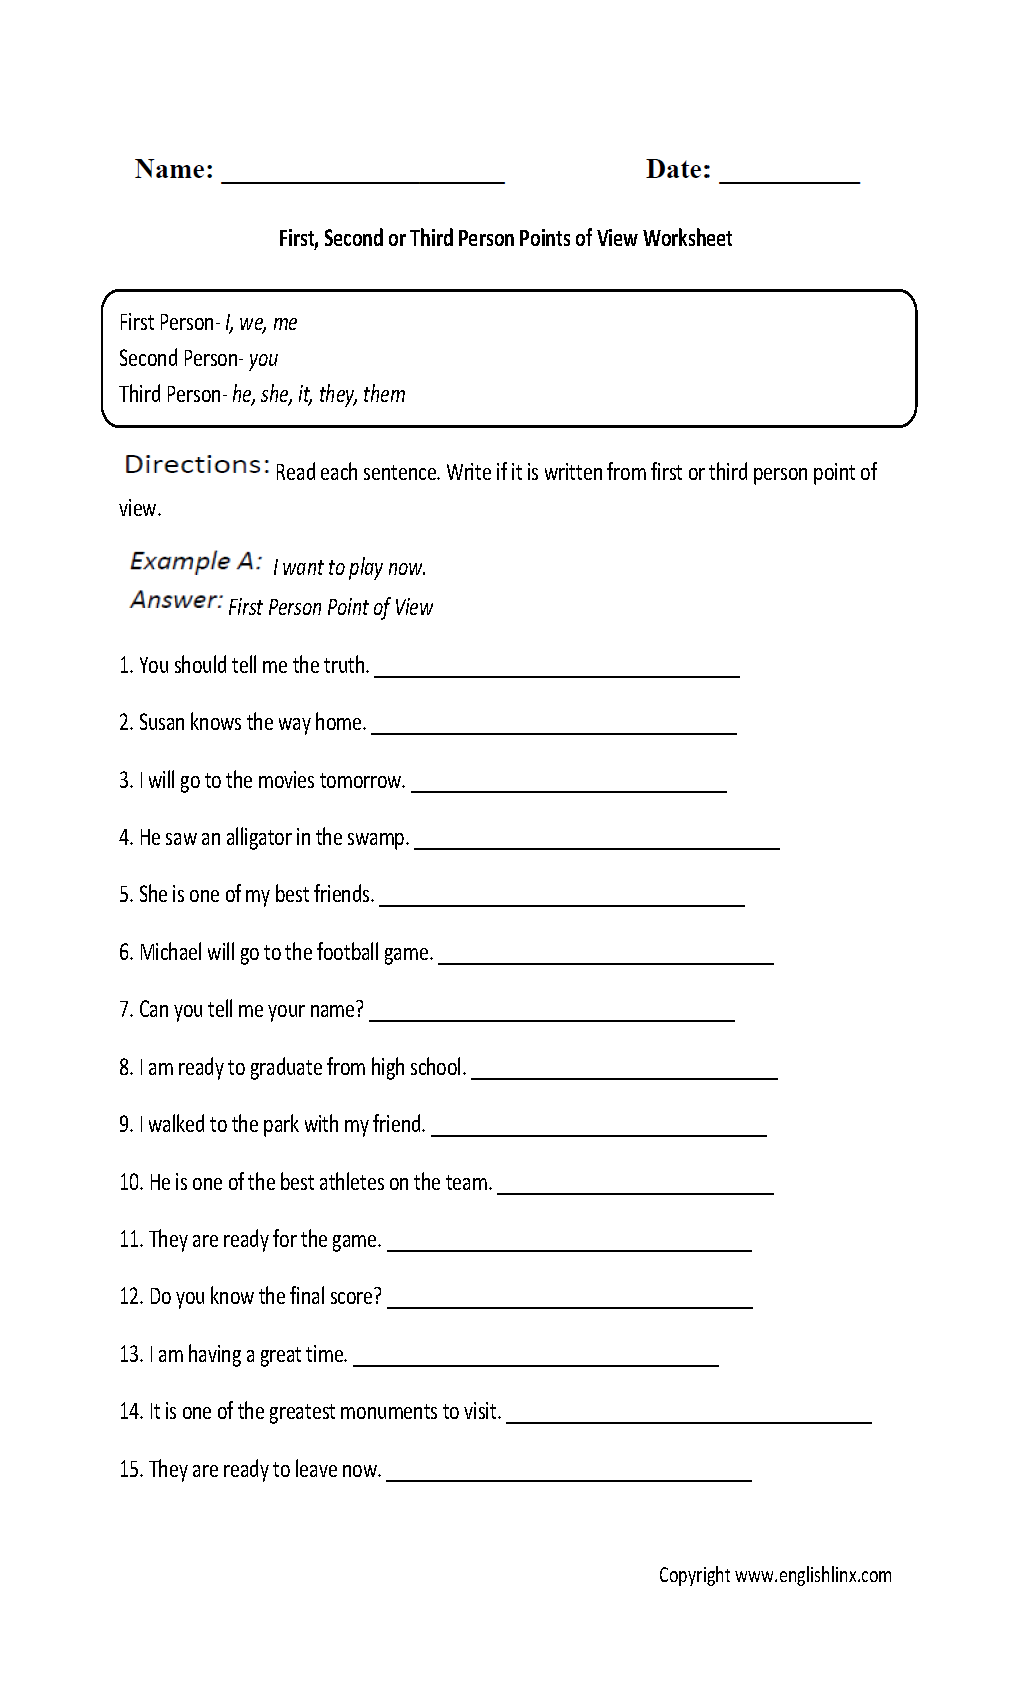 First, Second and Third Person Point of View Worksheet ...